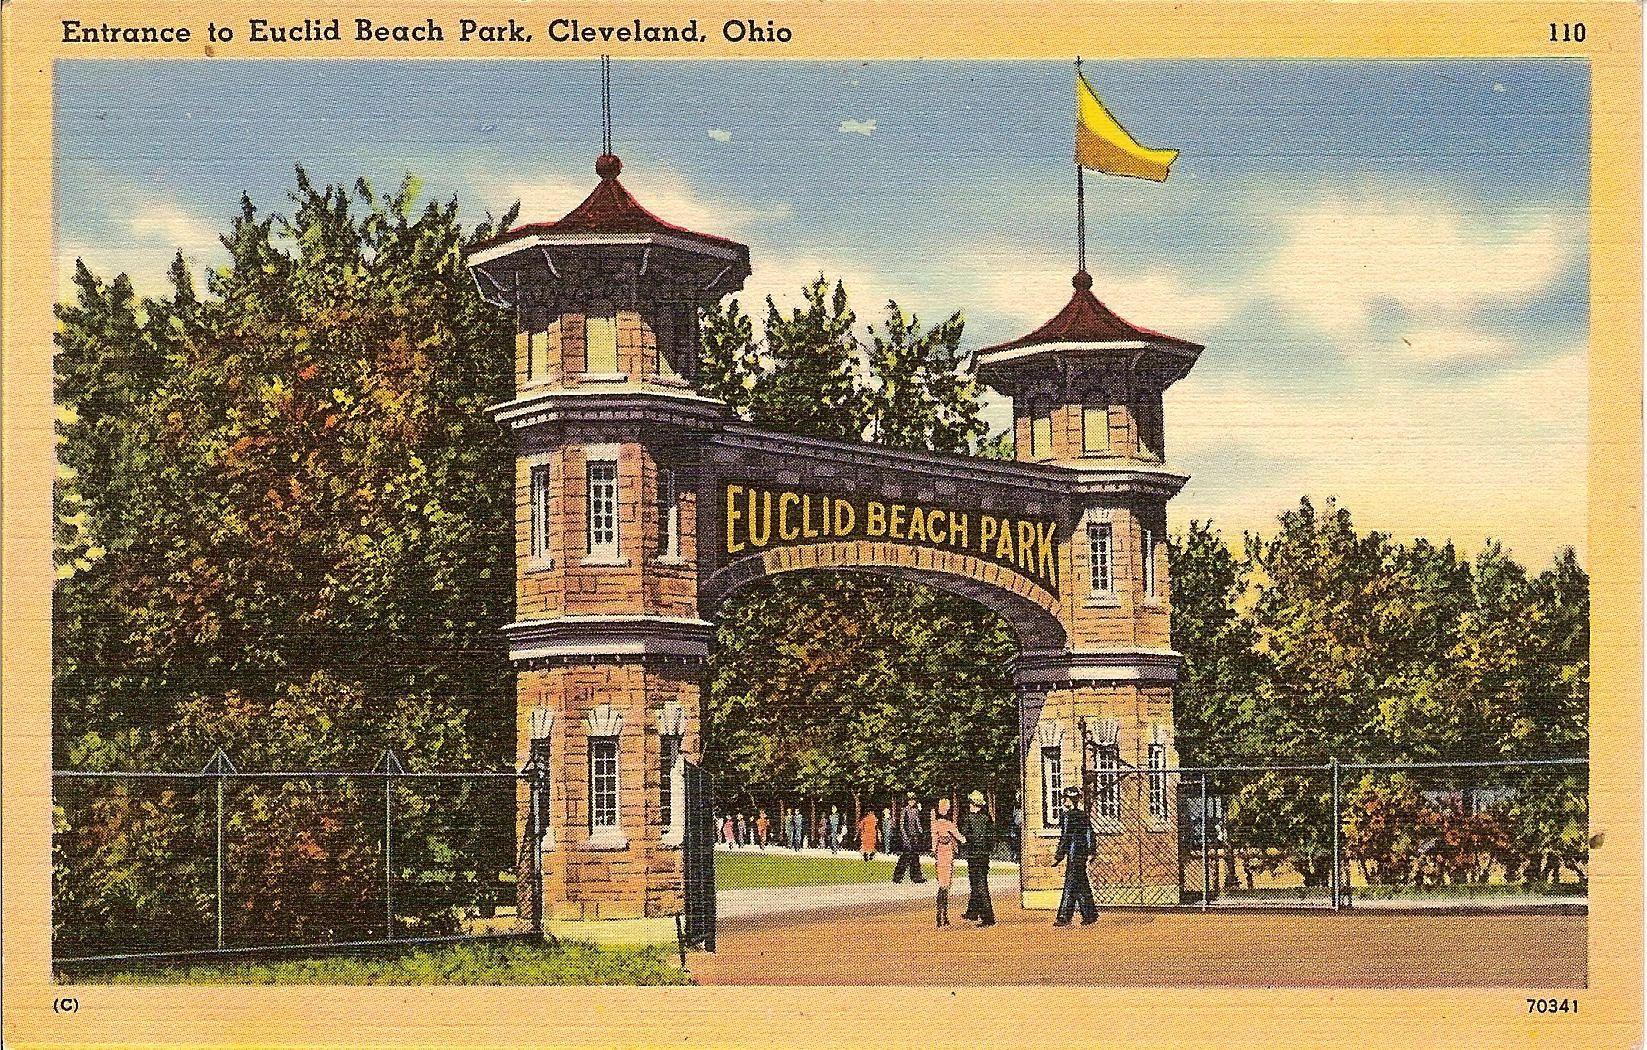 The Best 10 Beaches in Cleveland Ohio That You MUST Visit! 2 Euclid 20Beach 20Arch 201 20001%5B1%5D